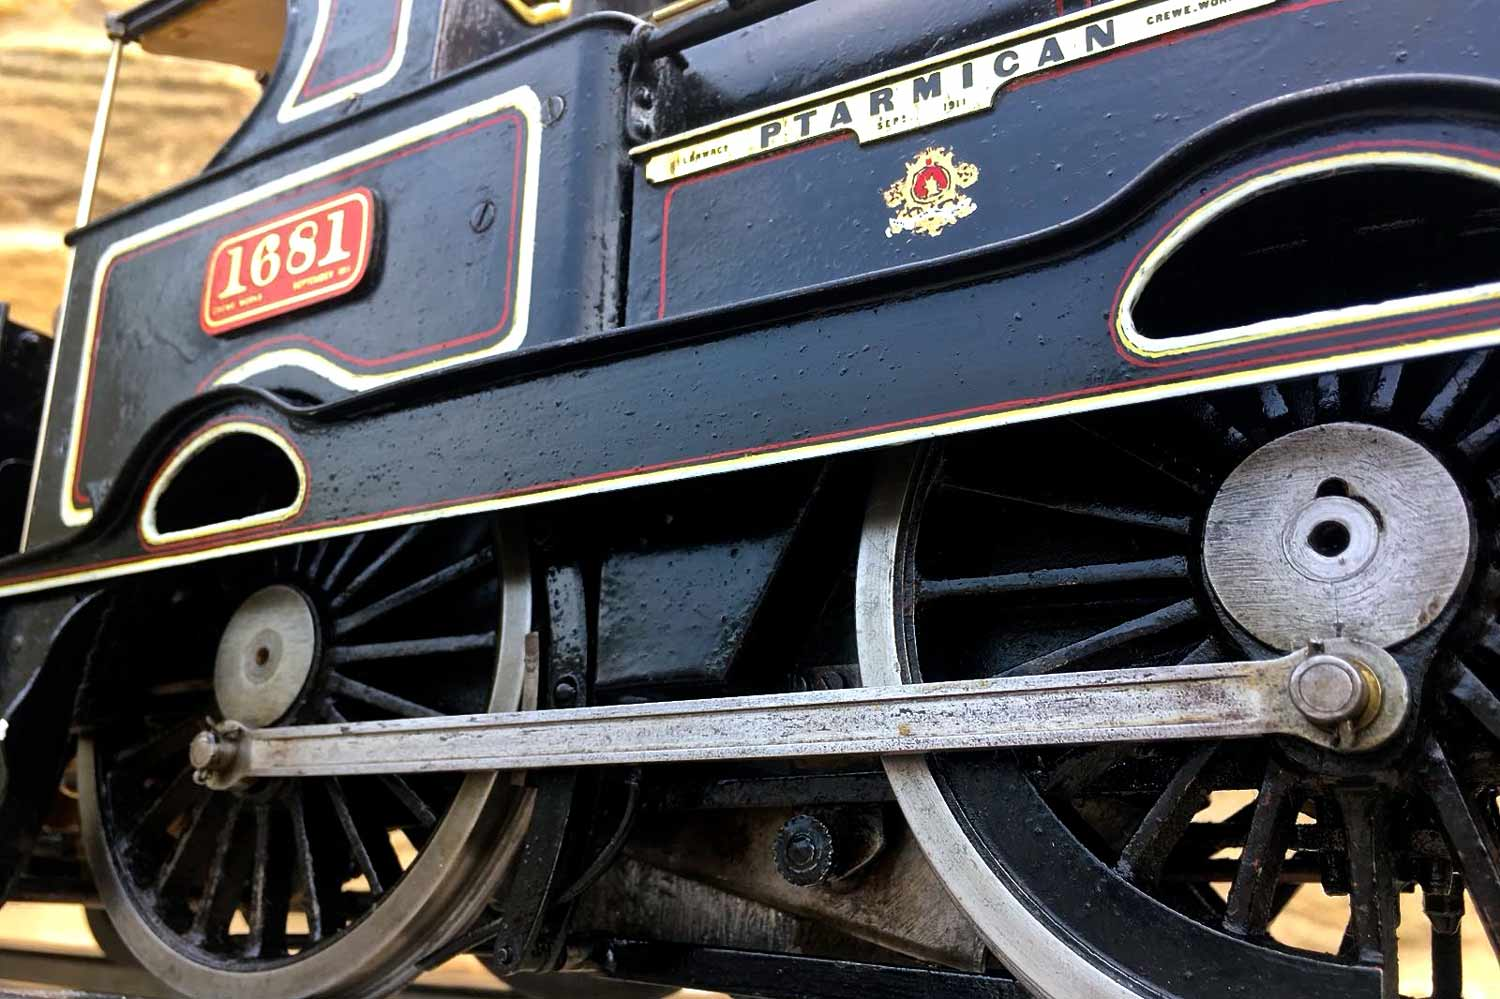 test 3-and-a-half-inch-LNWR-King-George-the-Fifth-live-steam-locomotive-for-sale-11